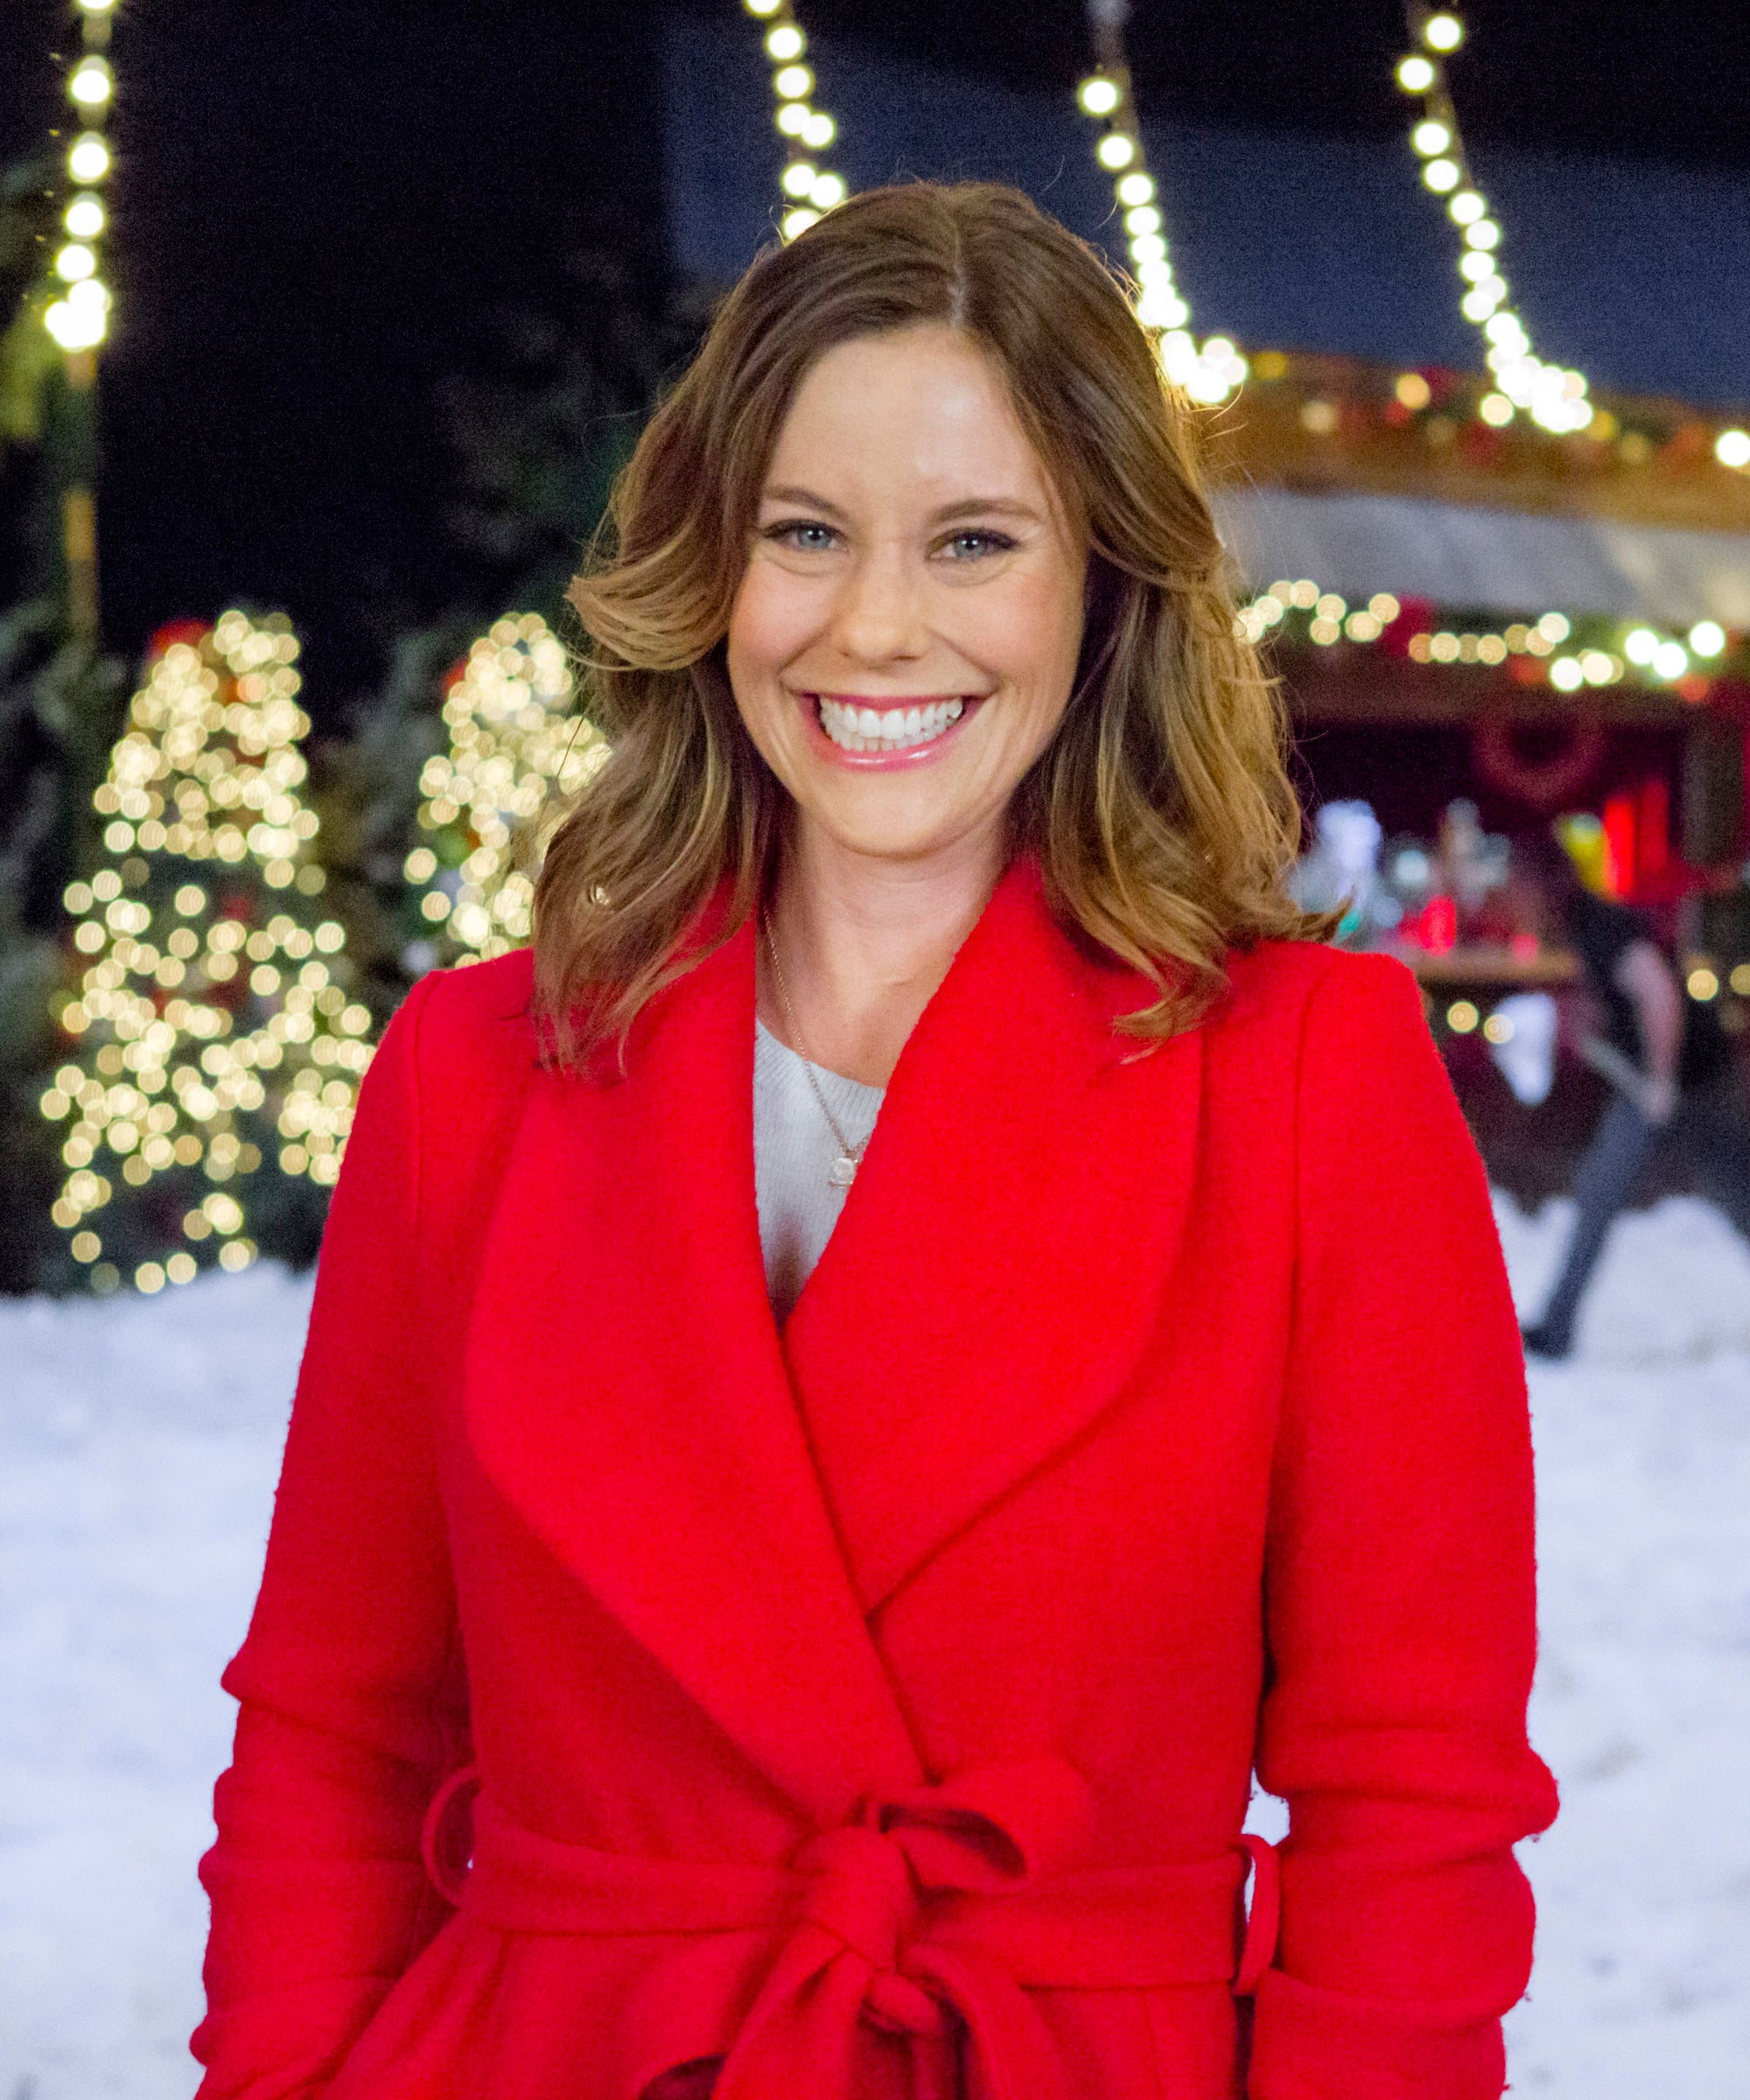 Christmas In Evergreen 2020 Cast Where Is Evergreen? Recurring Hallmark Christmas Town